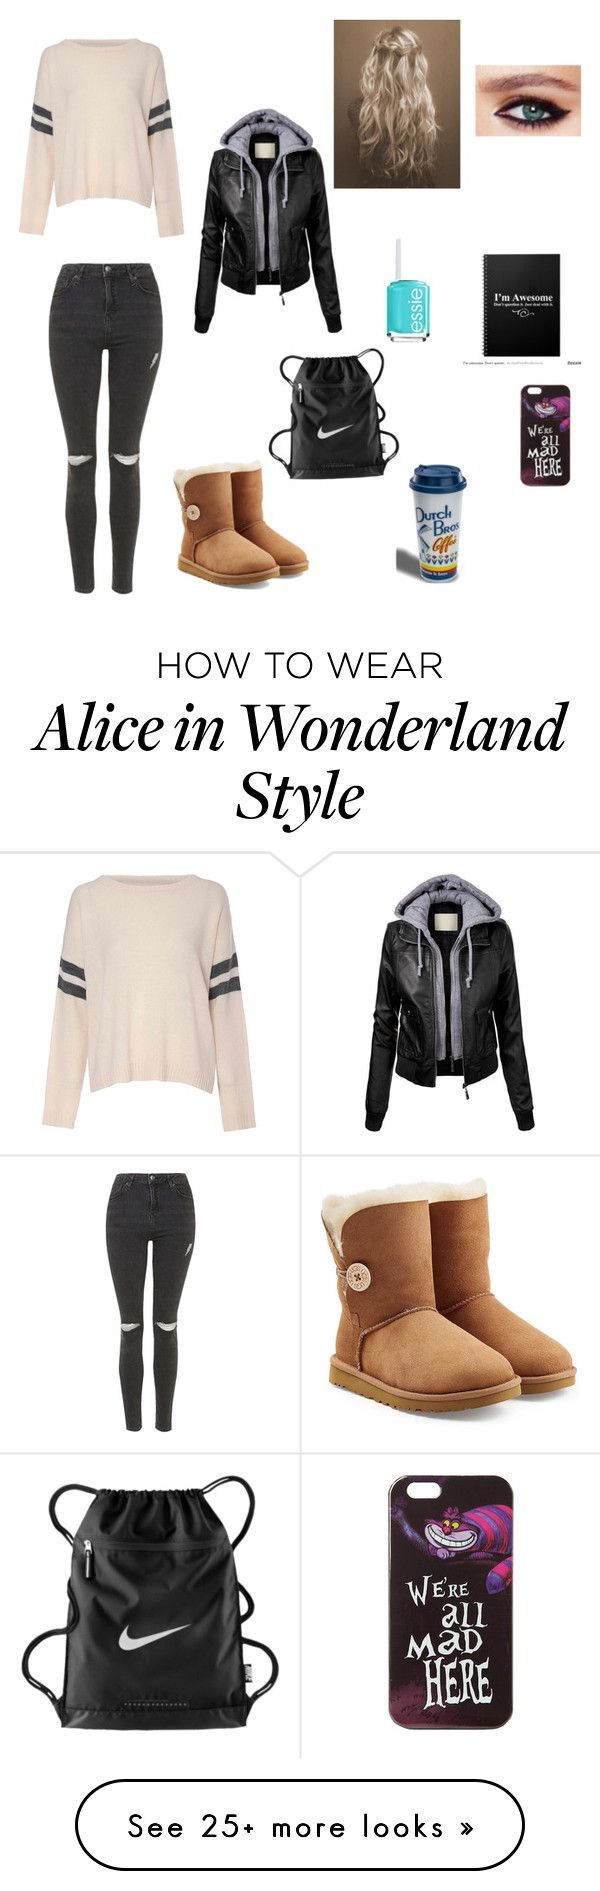 """""""Going to a debate with my friends"""" by lizzie208 on Polyvore featuring Topshop, Glamorous, UGG Australia, NIKE, Disney, Charlotte Tilbury and Essie"""